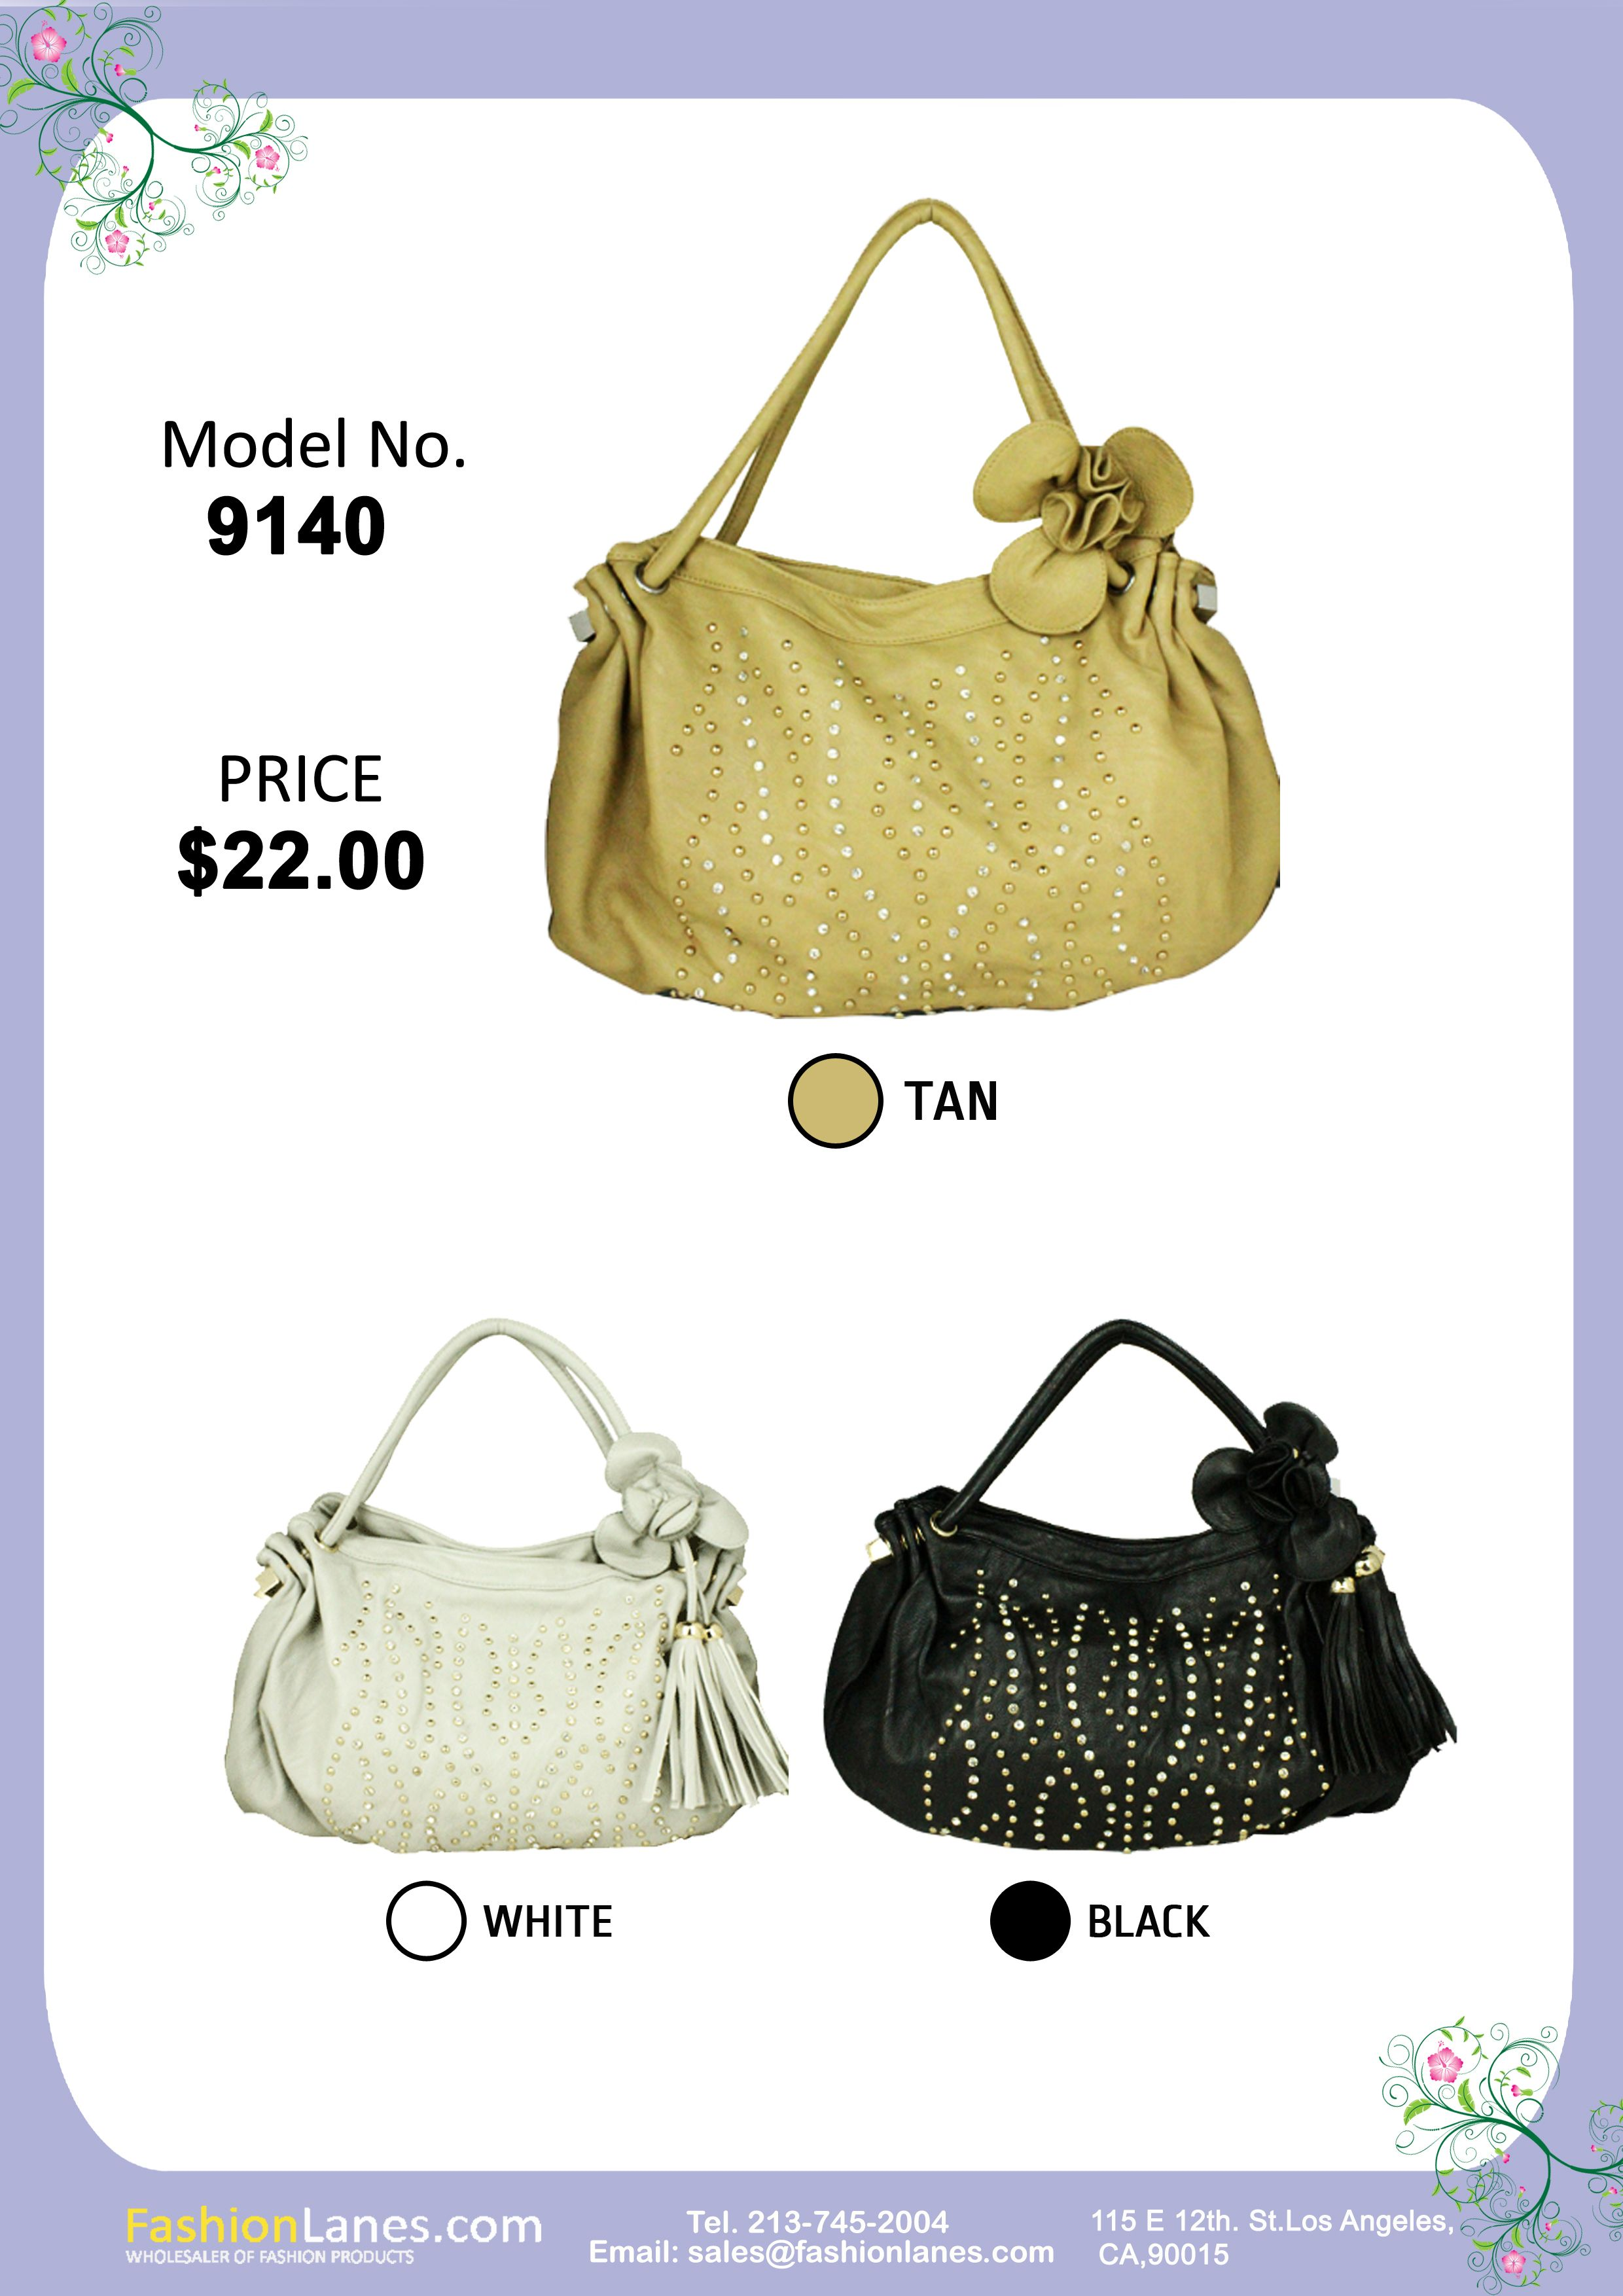 Checkout Our Amazing Handbags Model No 9140 Here